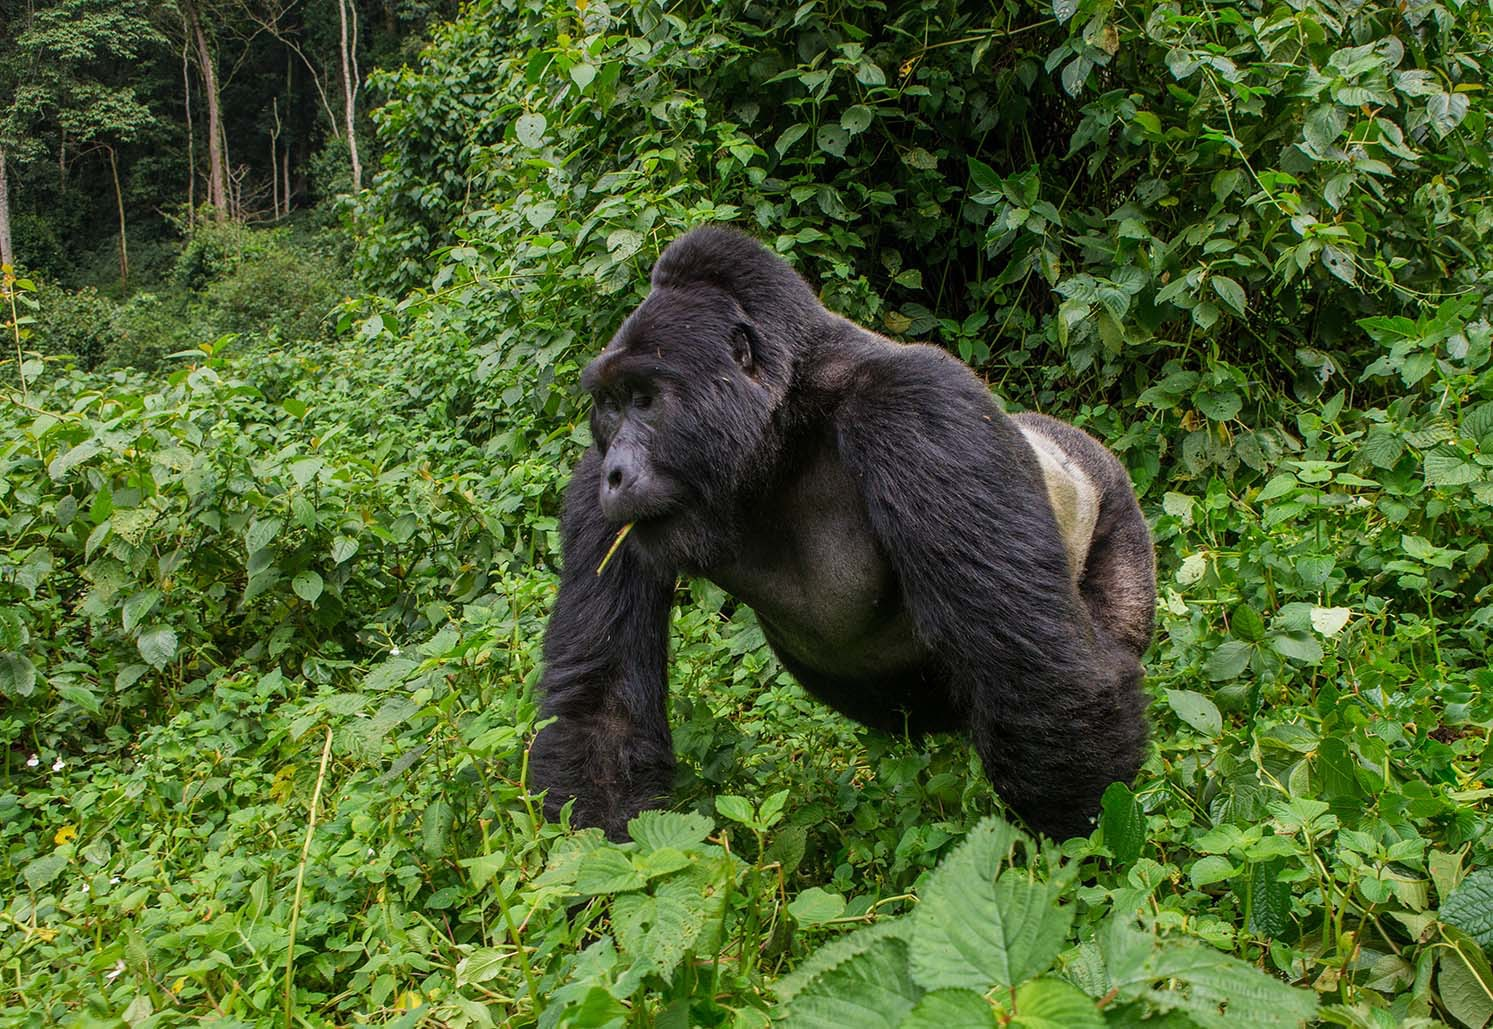 Each family of gorillas is accompanied by one male silverback